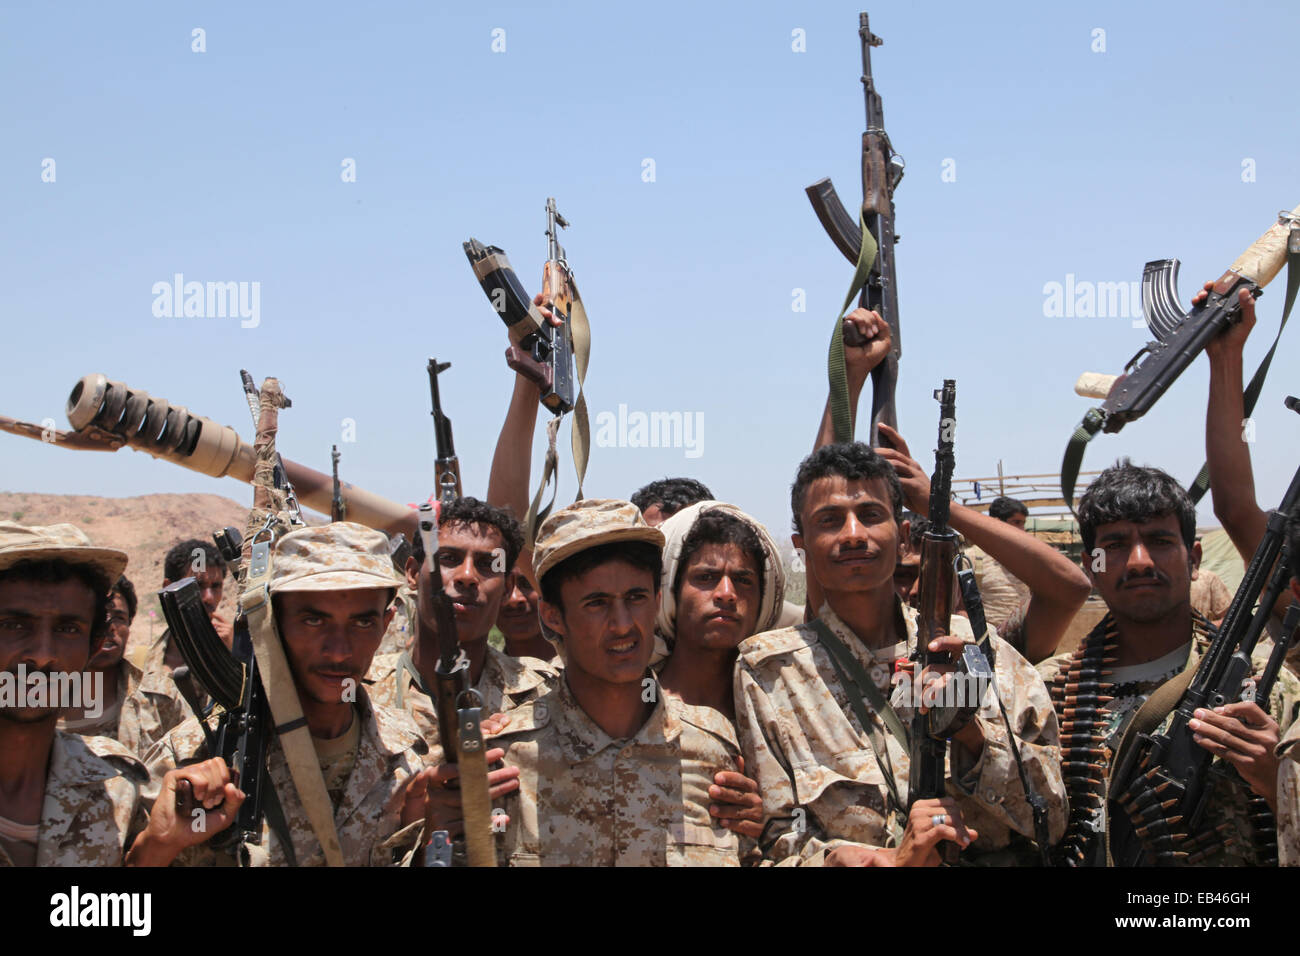 Aleppo, Syria. 9th May, 2014. Soldiers from the Yemeni army on the front line fighting against Al-Qaeda in Aleppo. - Stock Image